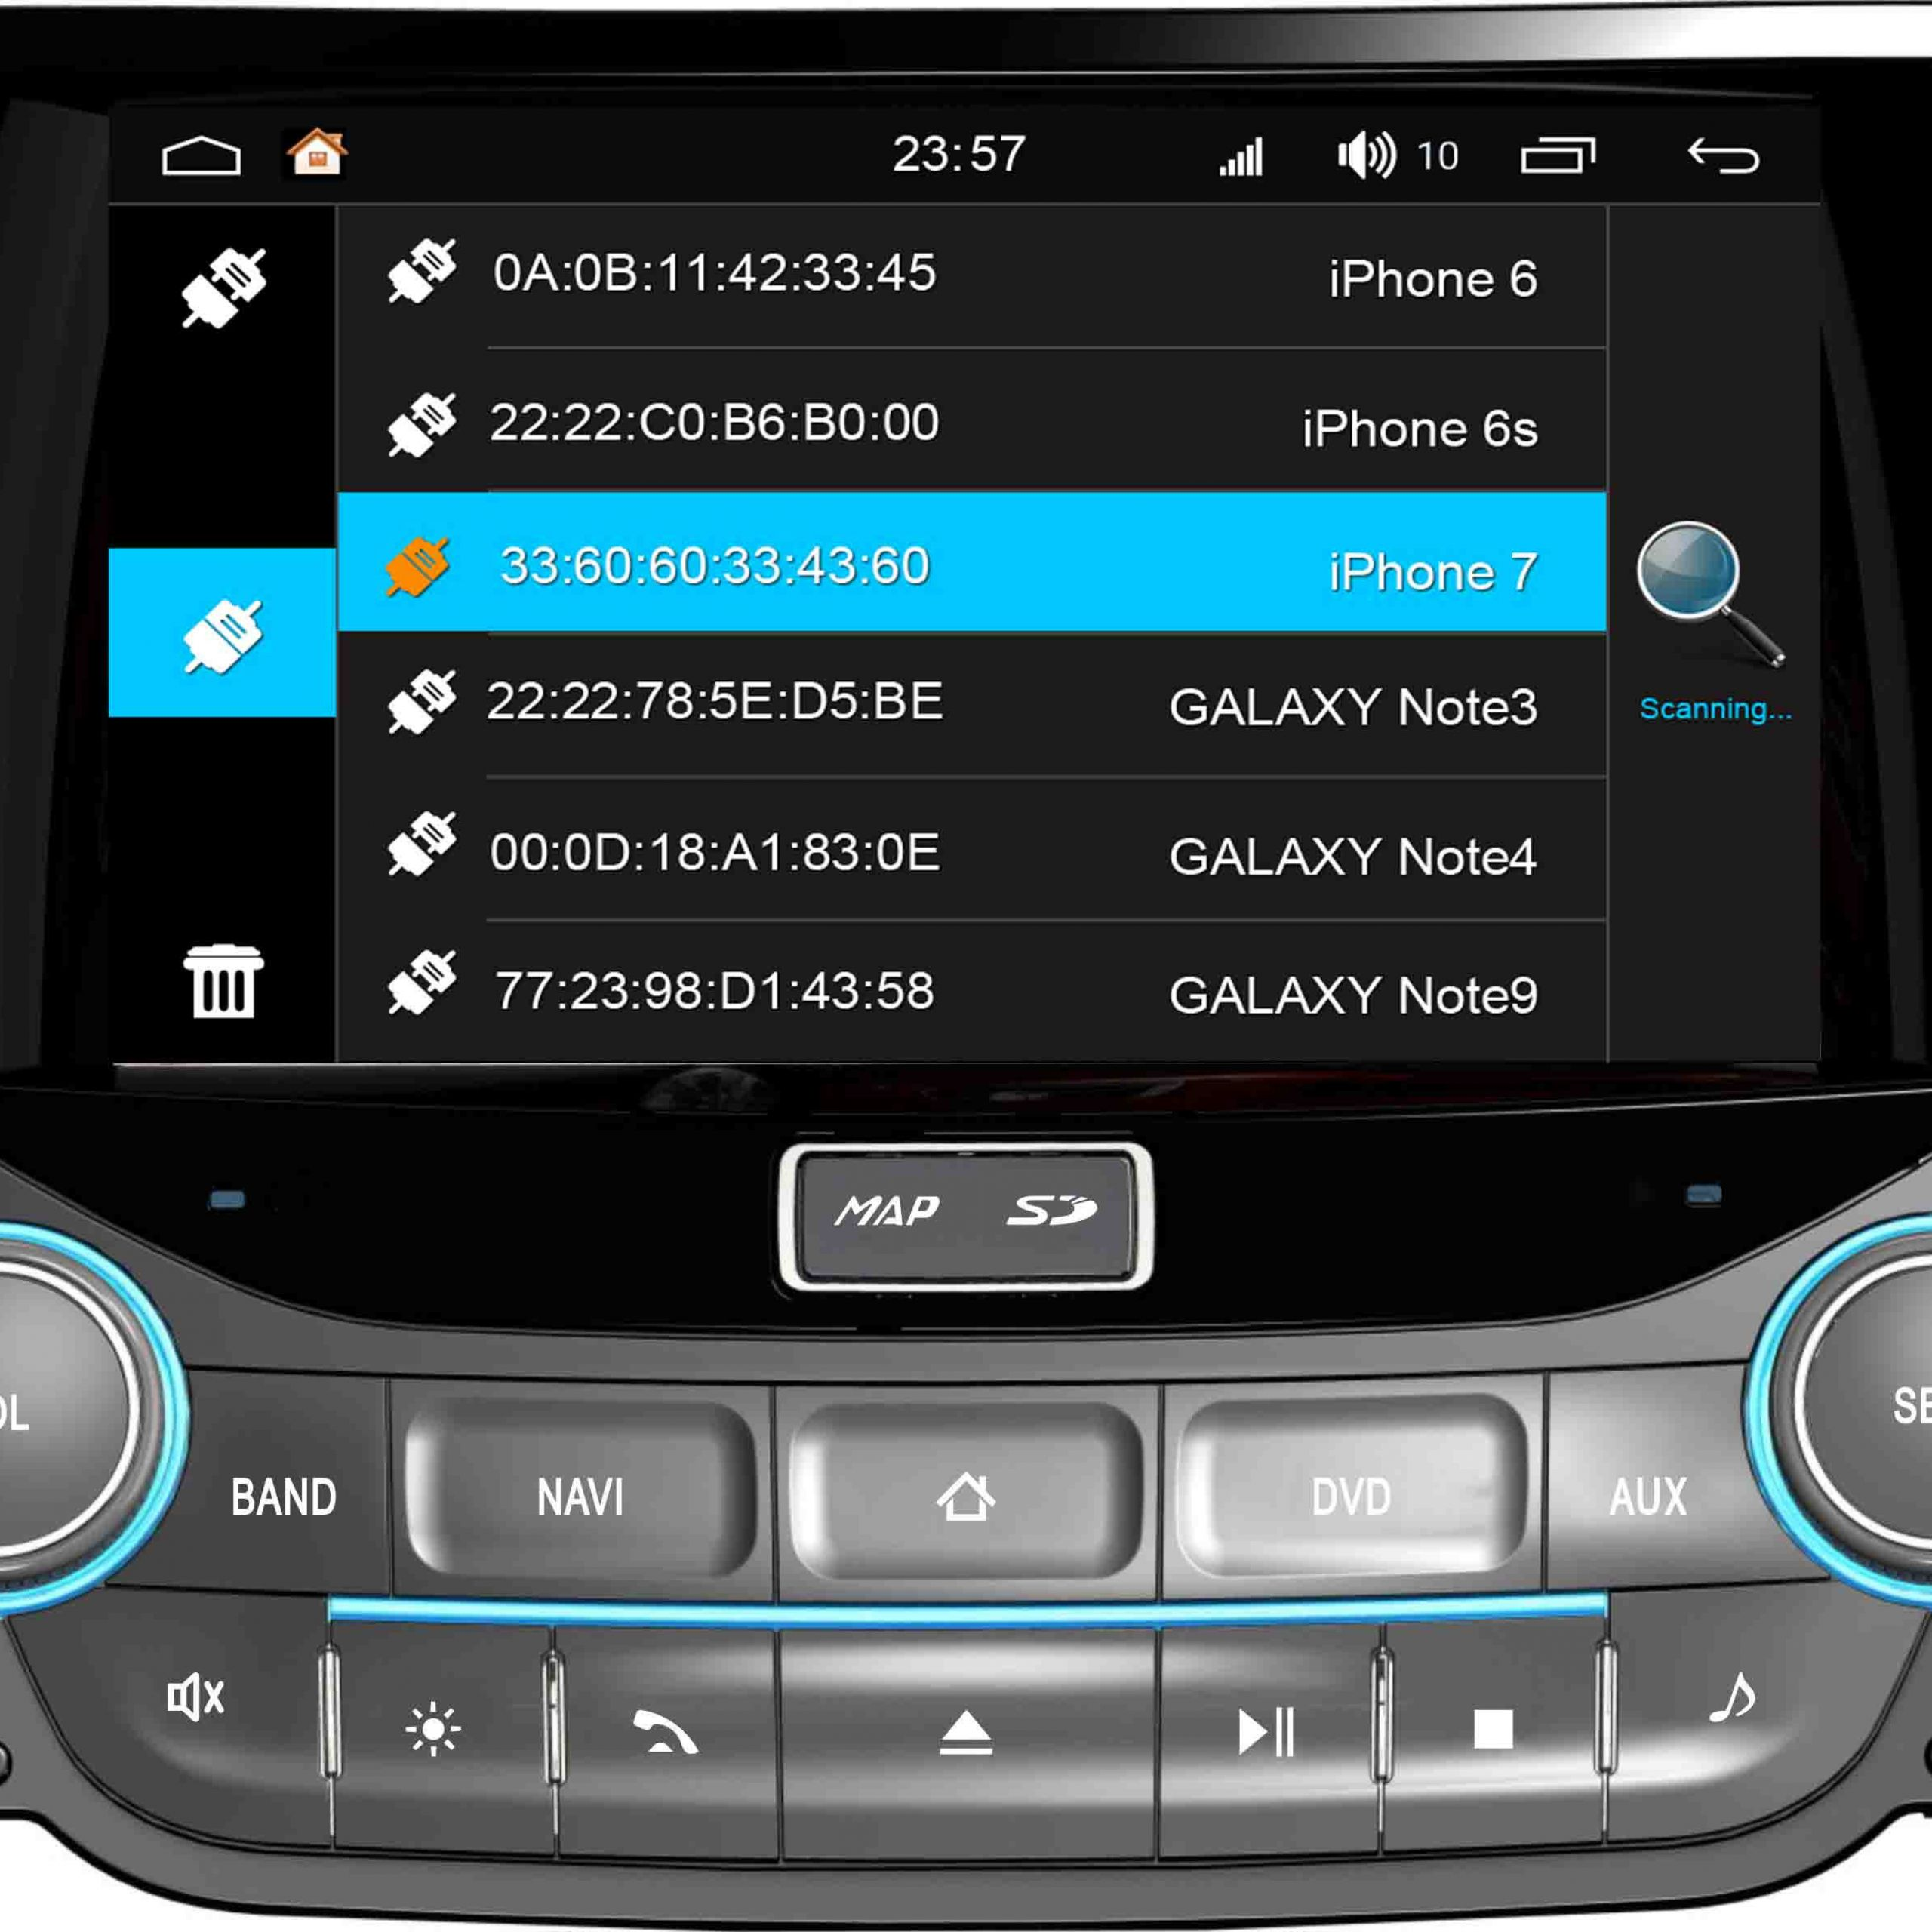 2009 Chevy Malibu Luxury Details About android 8 0 Car Gps Navigation Dvd Radio Stereo for Chevrolet Malibu 2012 2016